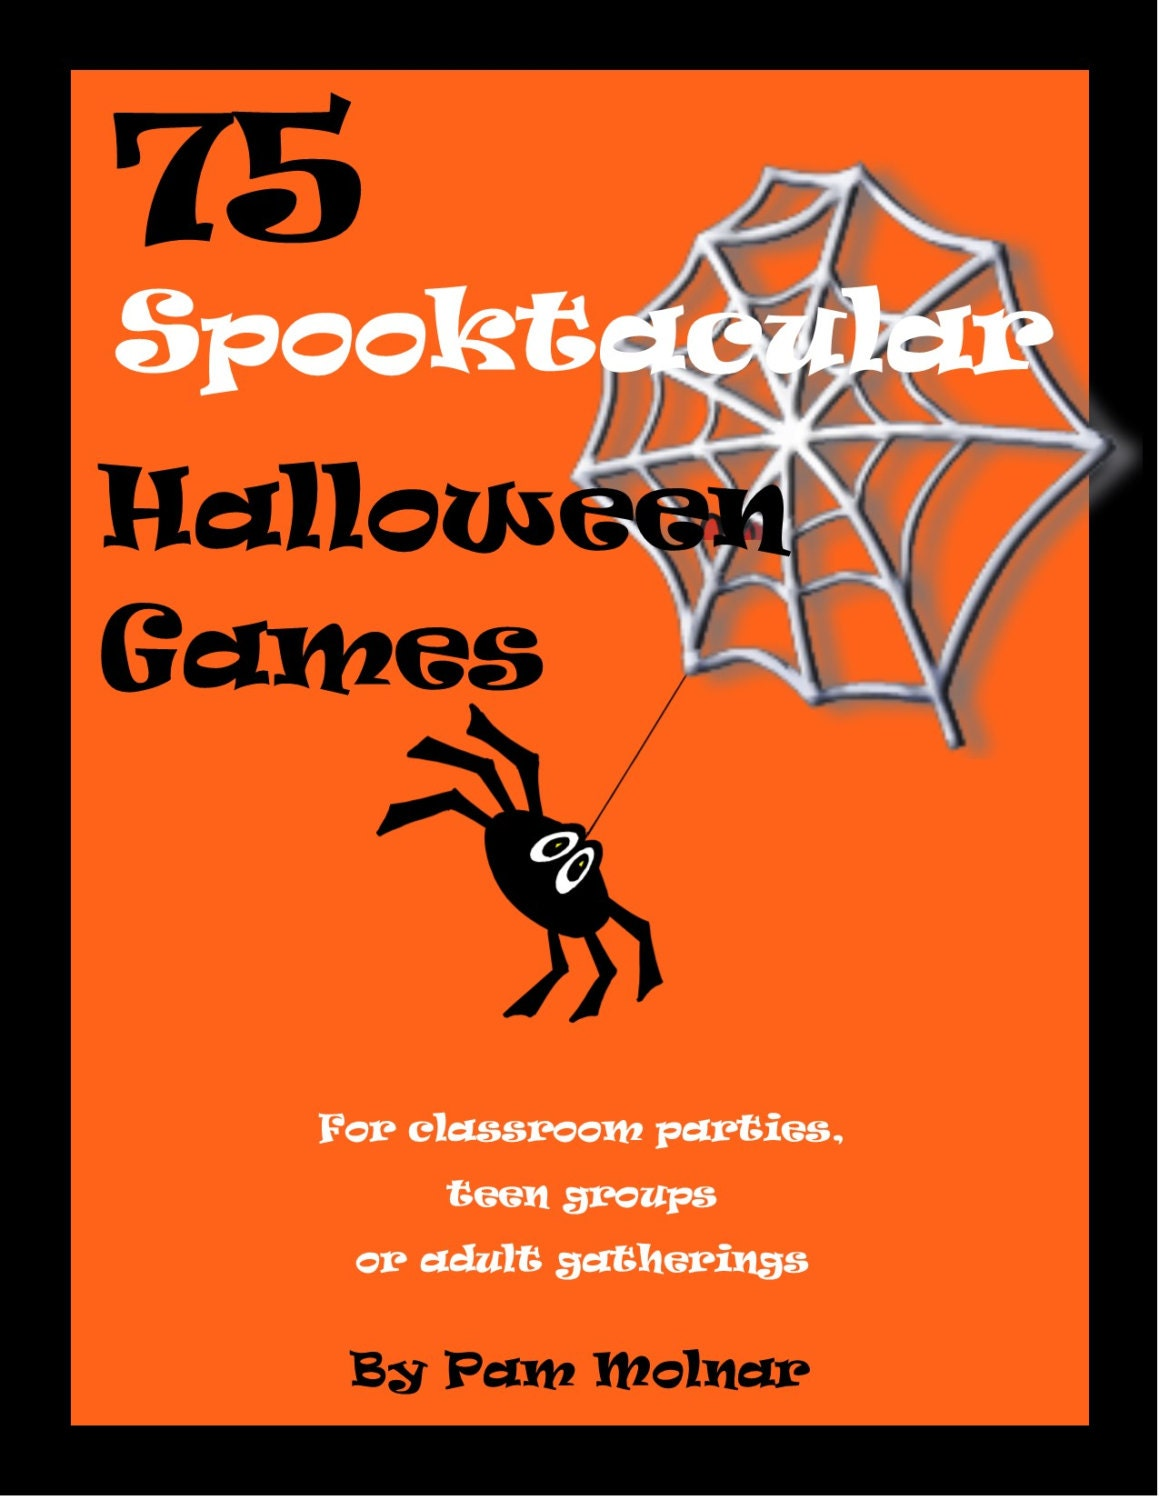 75 Spooktacular Halloween Games ideas for classroom